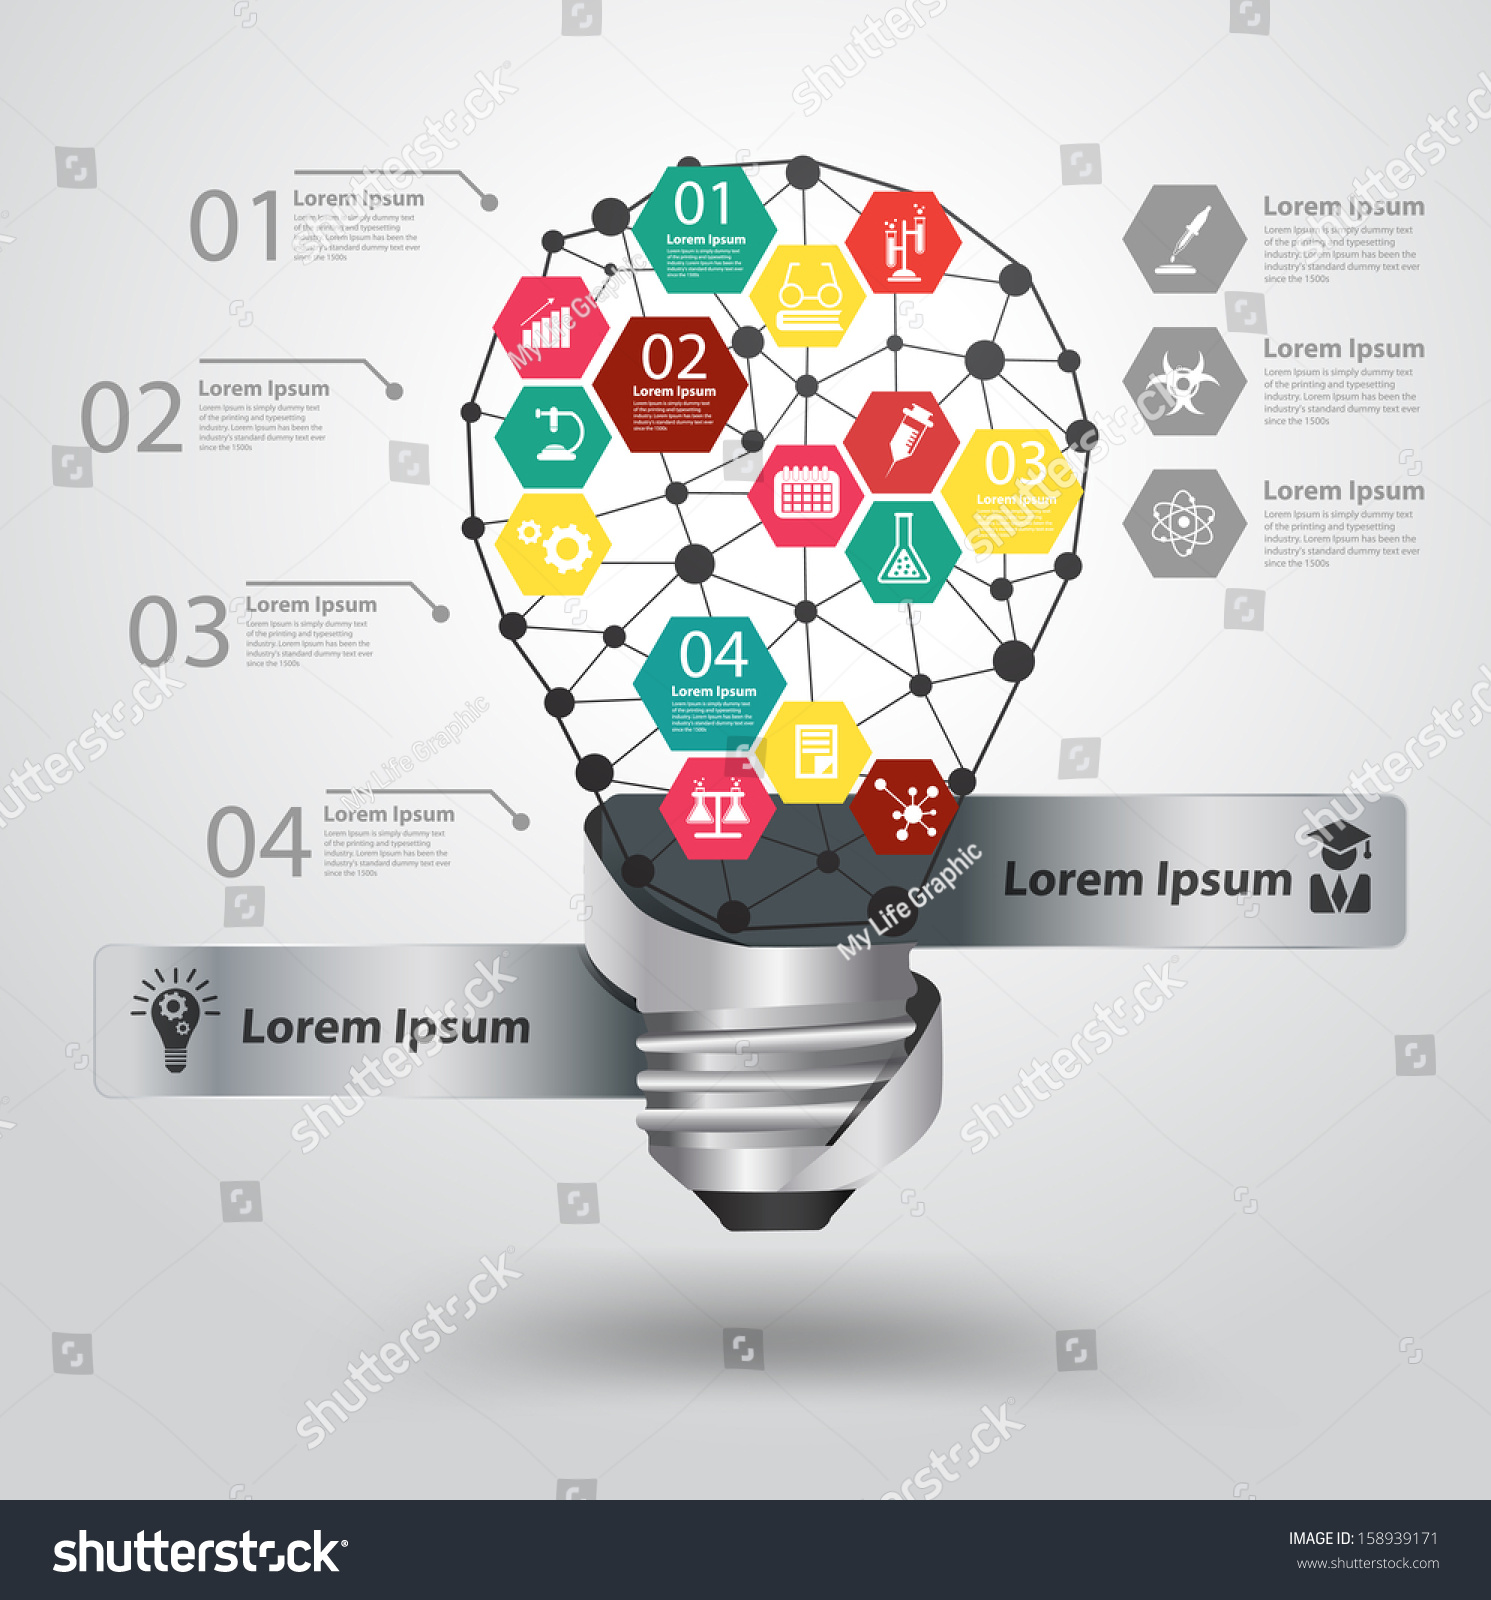 Creative Light Bulb Abstract Infographic Hexagon Stock Vector Diagram Of Incandescent Modern Design Template Workflow Layout Step Up